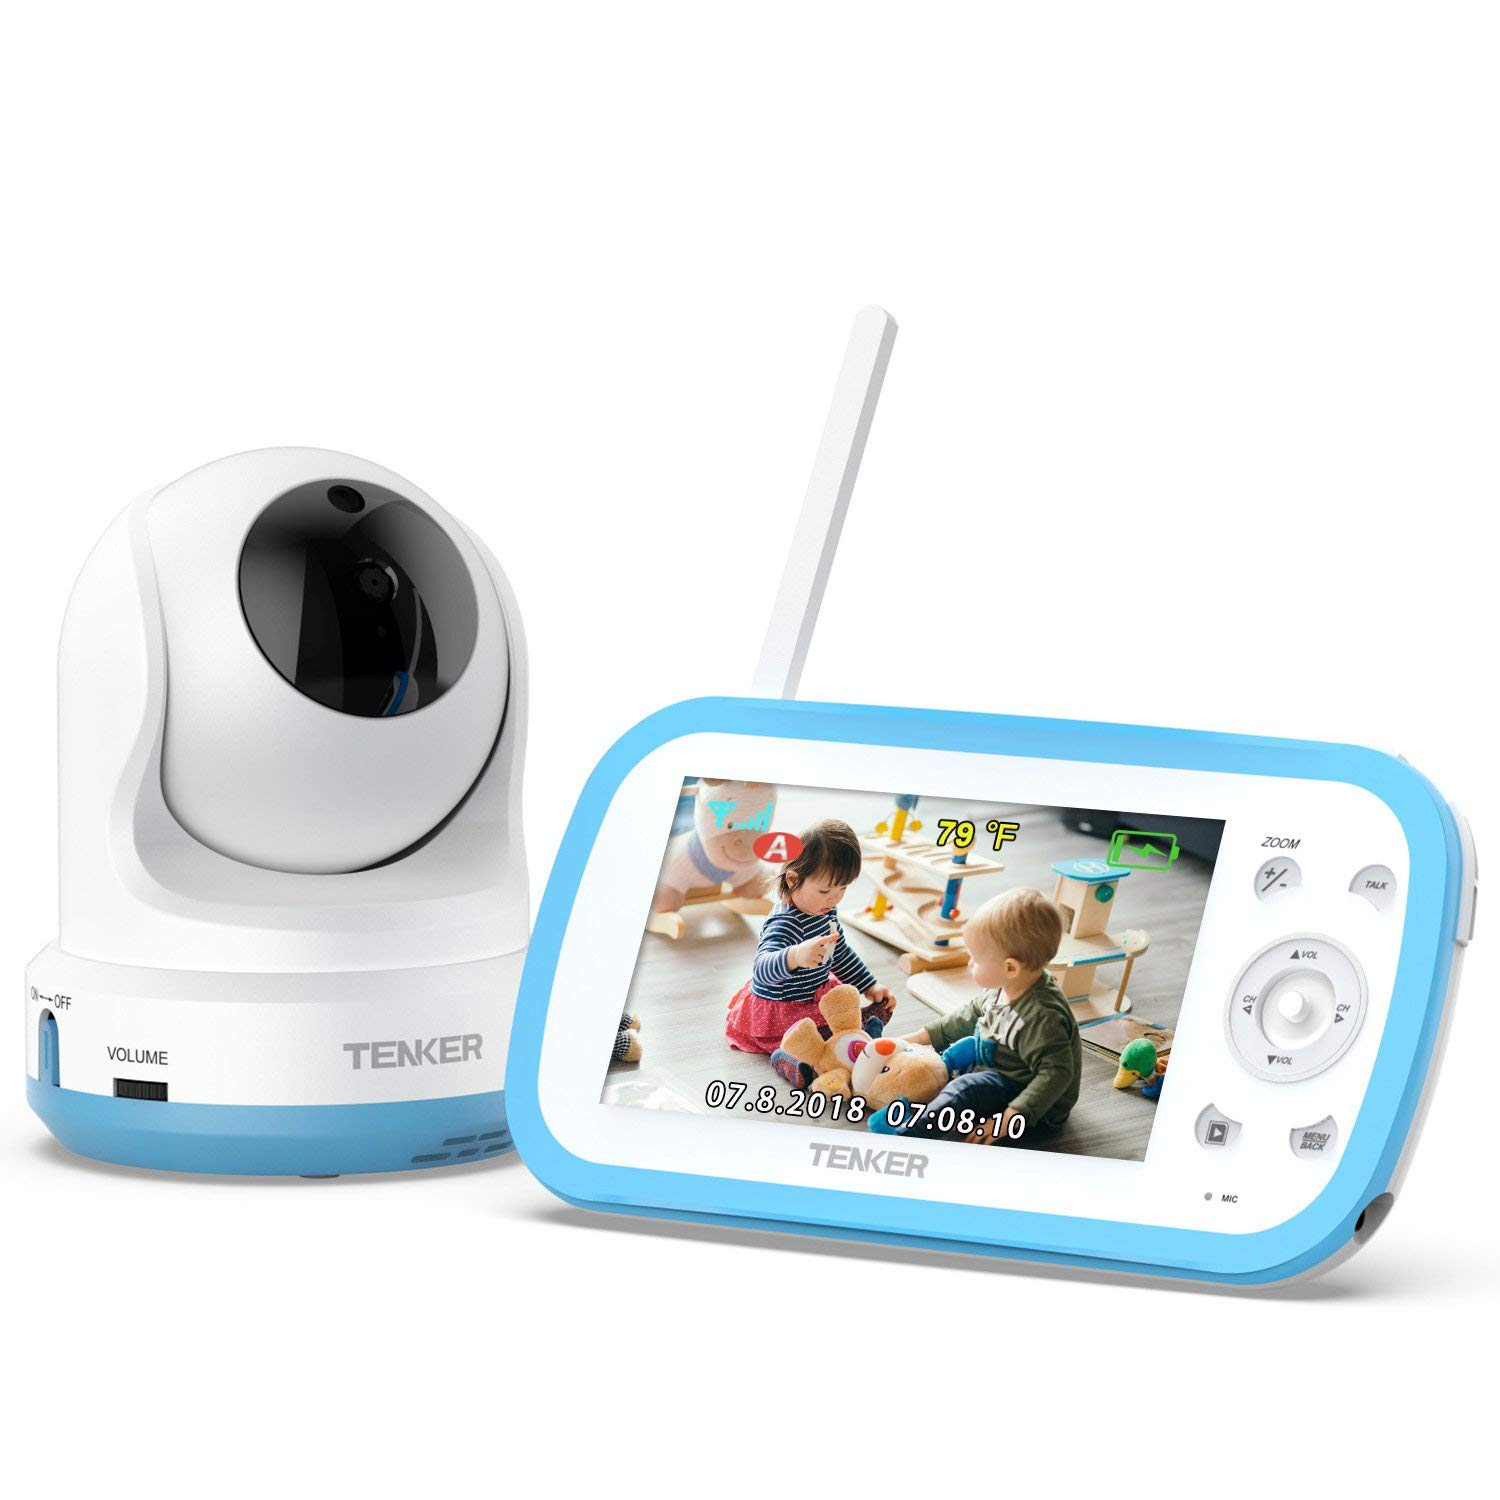 TENKER Video Baby Monitor with Camera and Audio, Baby Monitor with Night Vision, 4.3-Inch LCD Screen, 270°Pan-Tilt-Zoom, VOX, Lullaby, Two Way Talk, Temperature Detection, and Video Record (Blue-1) by TENKER